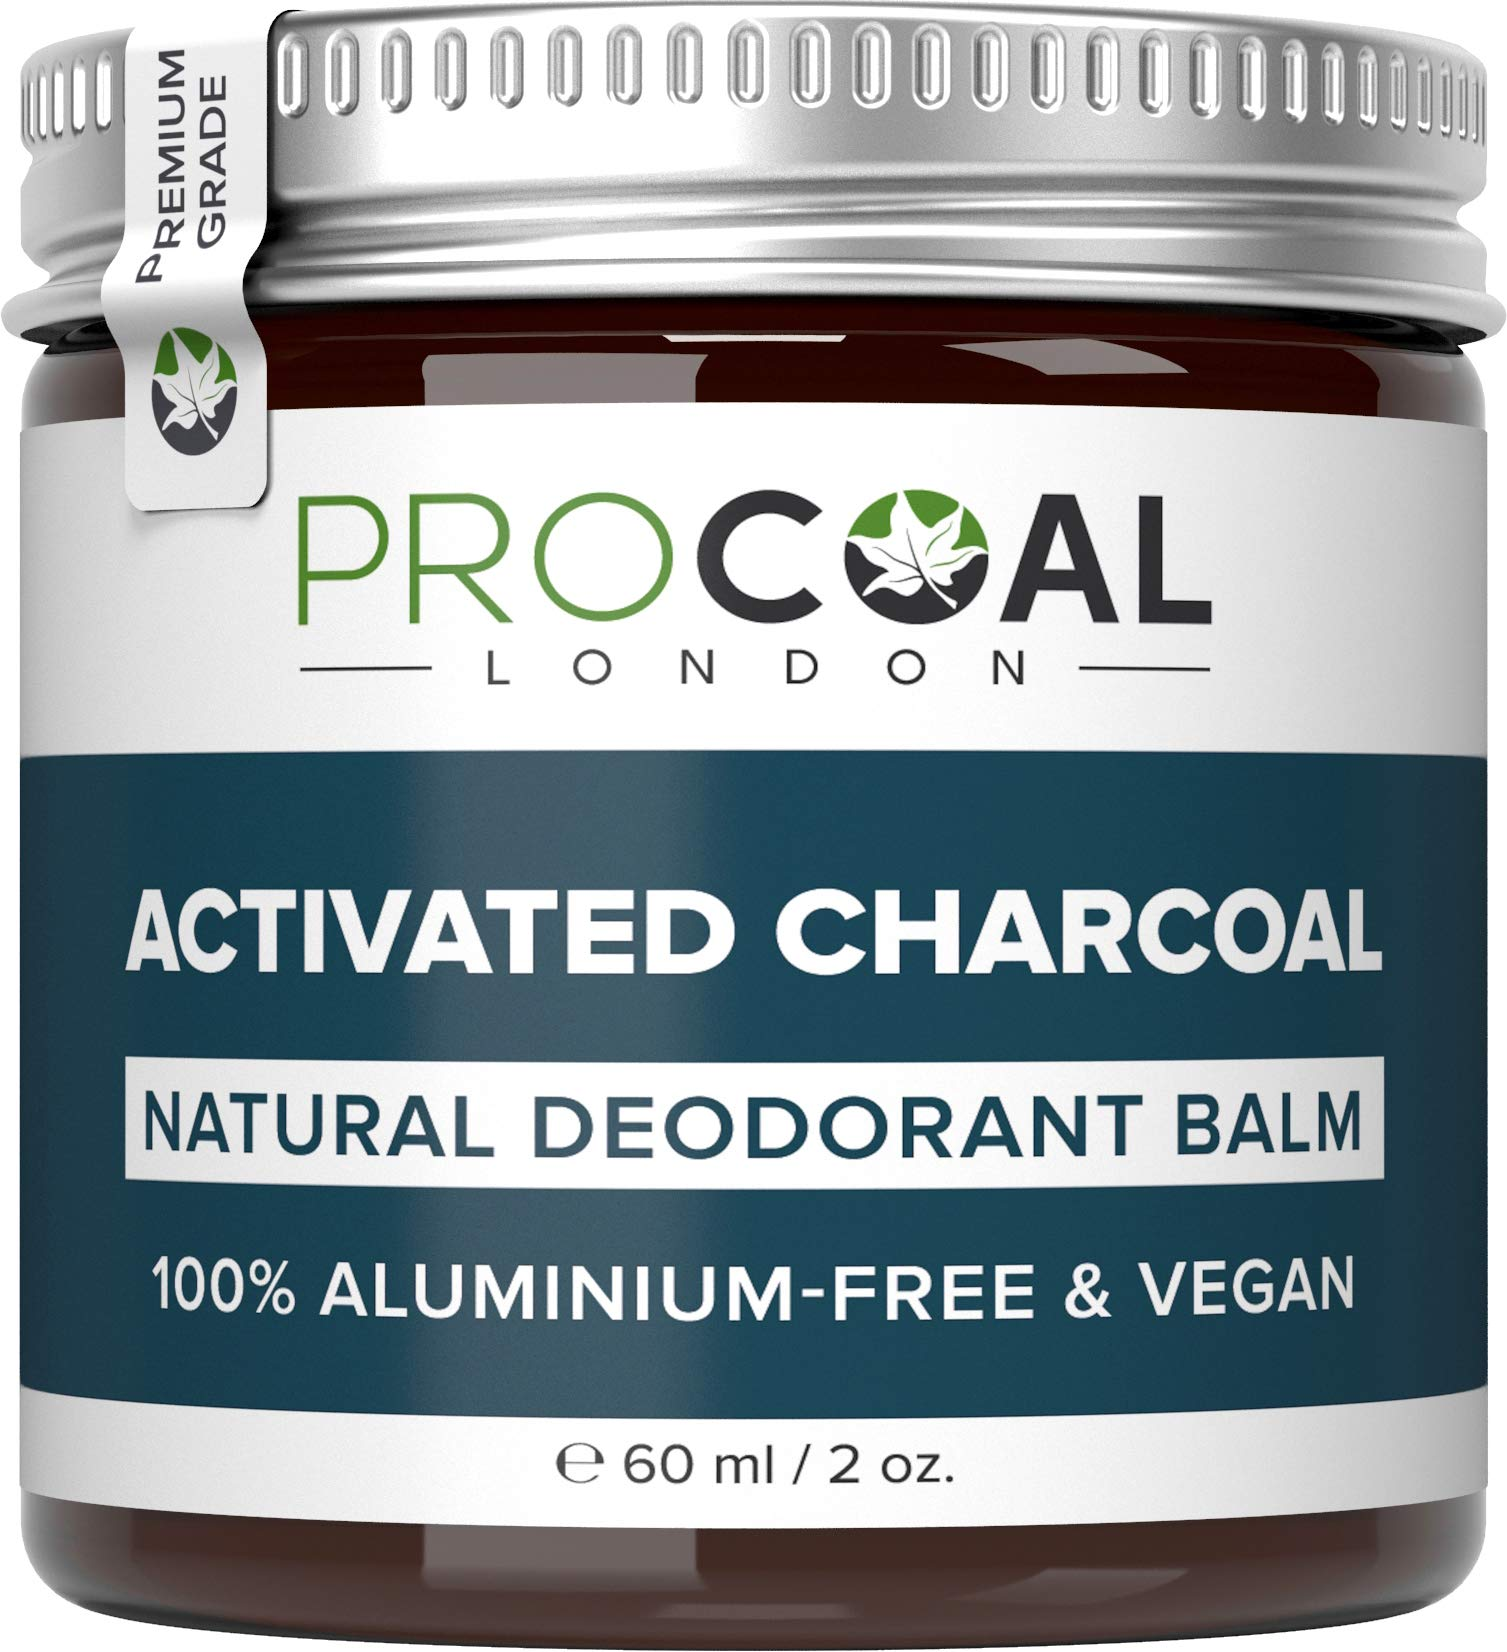 Natural Deodorant with Activated Charcoal by PROCOAL – 100% Aluminium Free Deodorant Mens & Womens, Better Than Nuud & Native Deodorants, Cruelty-Free, Paraben, Phthalates & Plastic Free, Made in UK